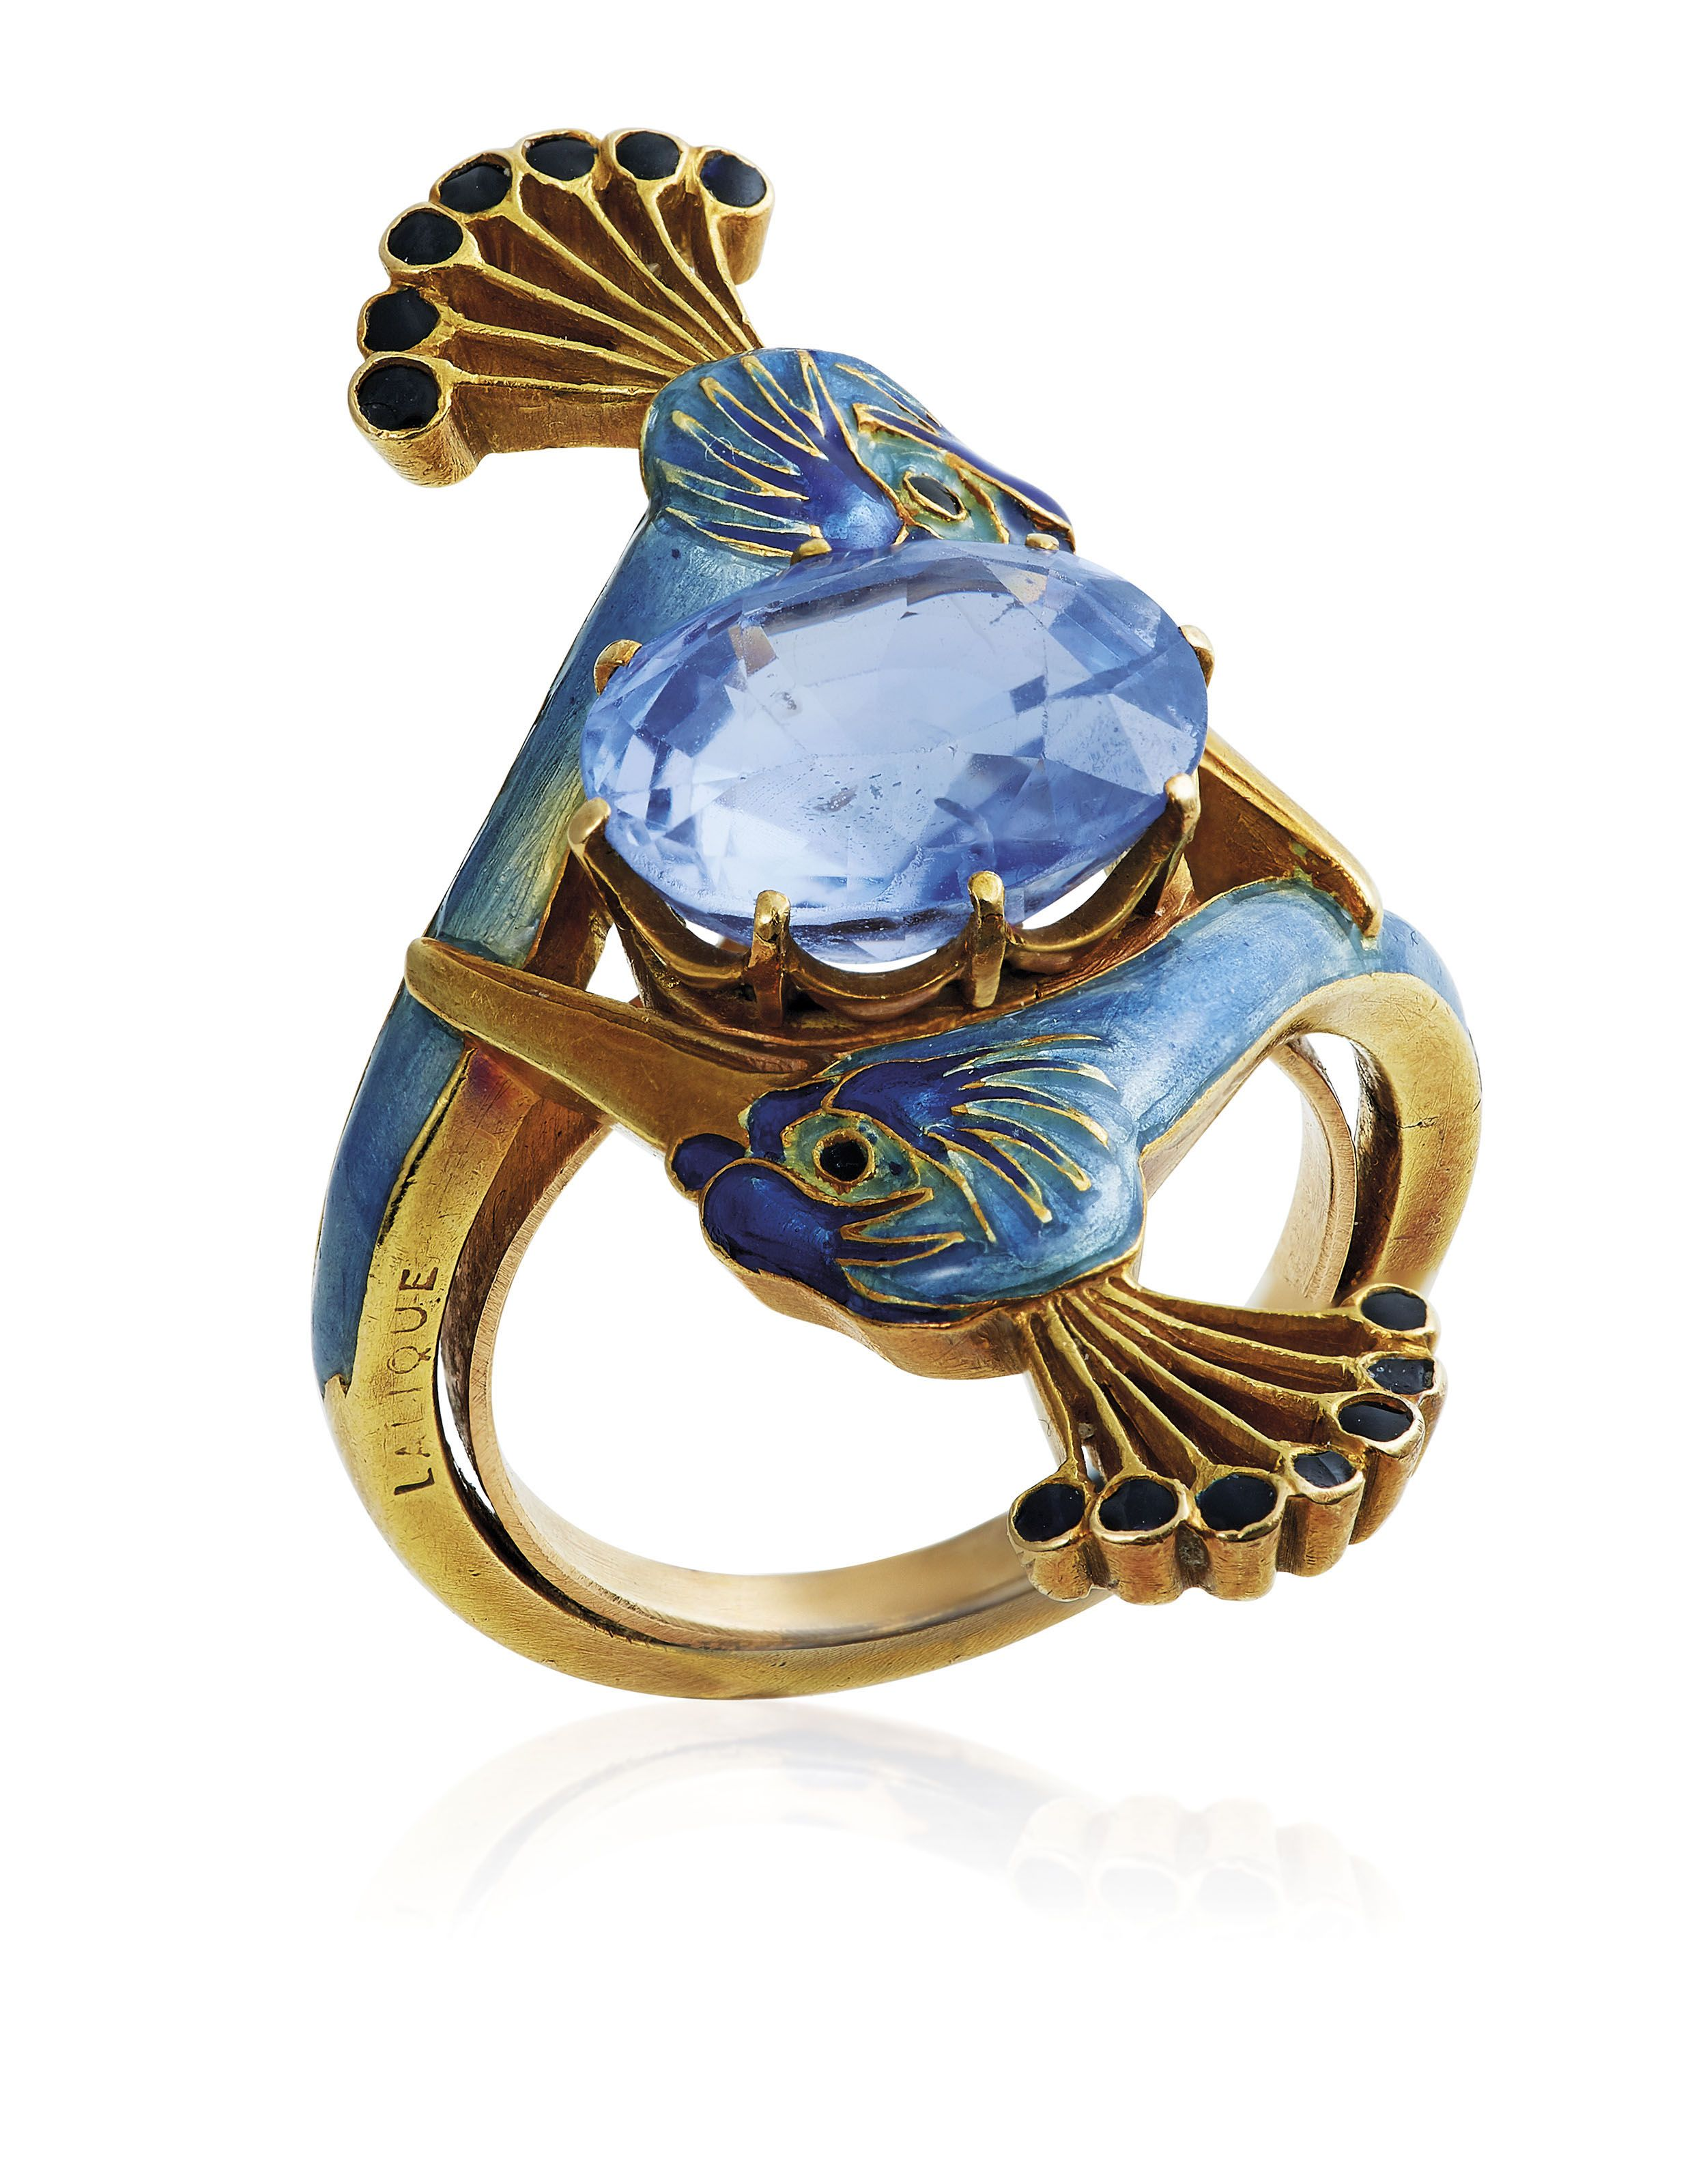 c176c1fe8f6bfb AN ART NOUVEAU SAPPHIRE AND ENAMEL RING, BY RENÉ LALIQUE Price realised USD  164,125. (CHF 162,500) 13/11/17